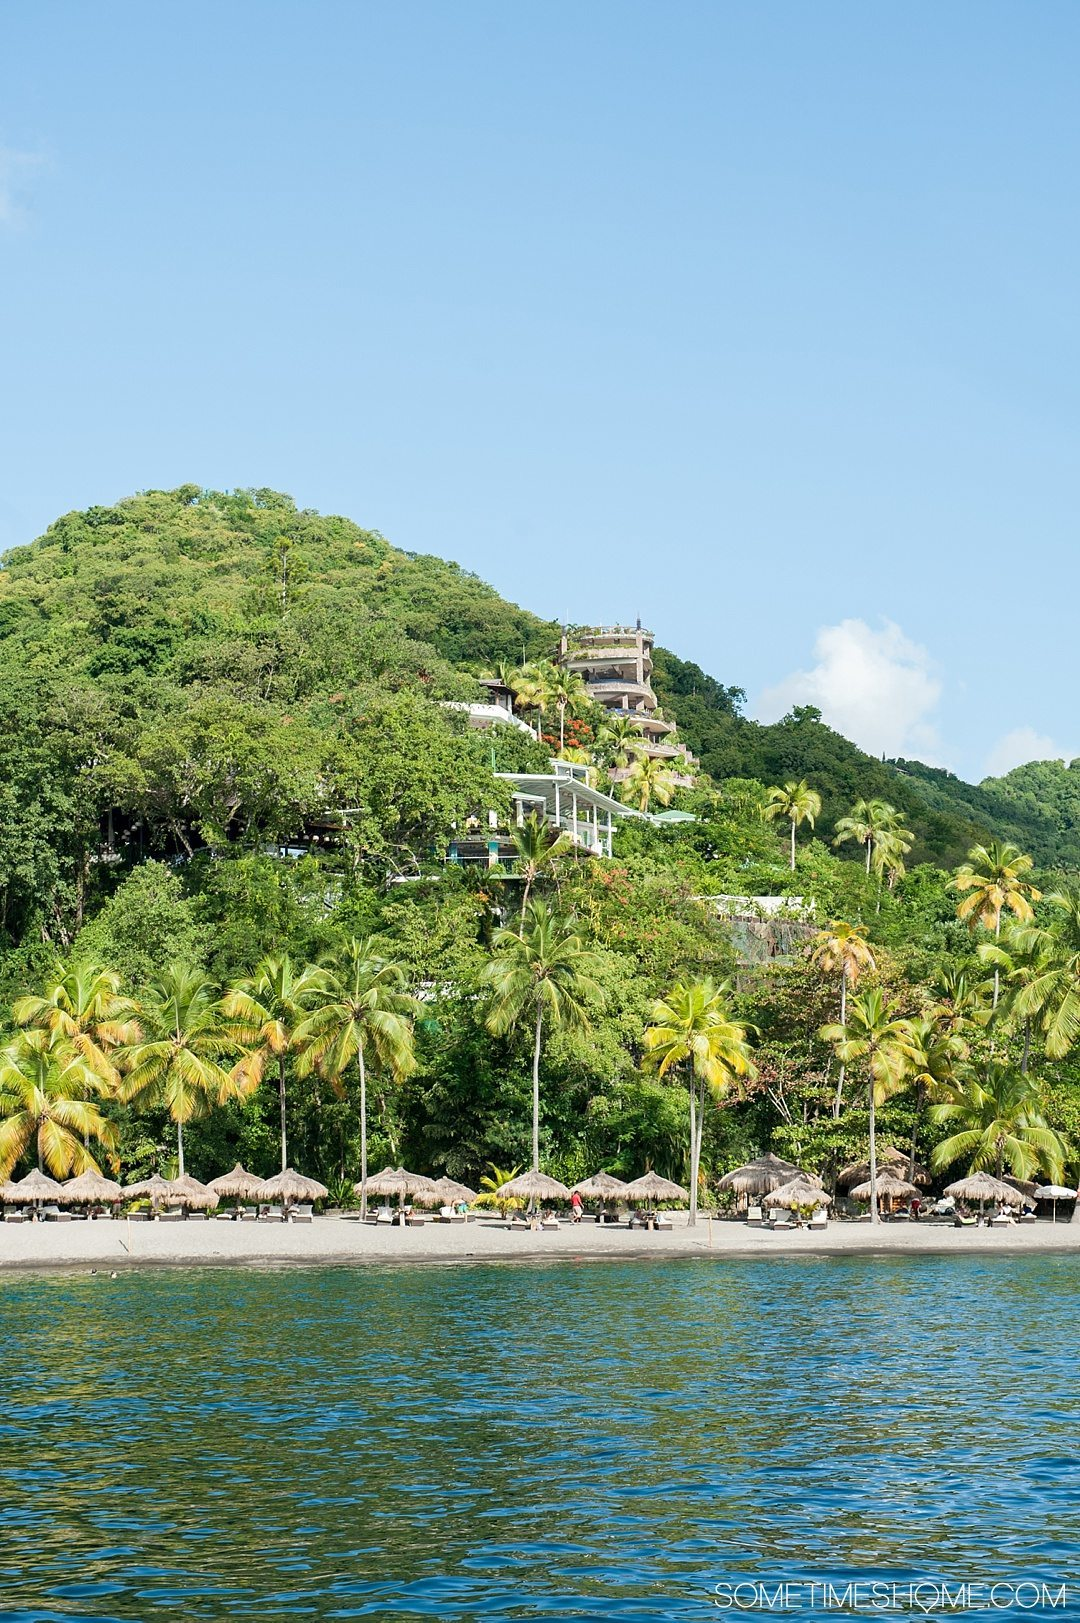 Your Questions Answered: Jade Mountain St. Lucia on Sometimes Home travel blog. The resort is built in harmony with the landscape.